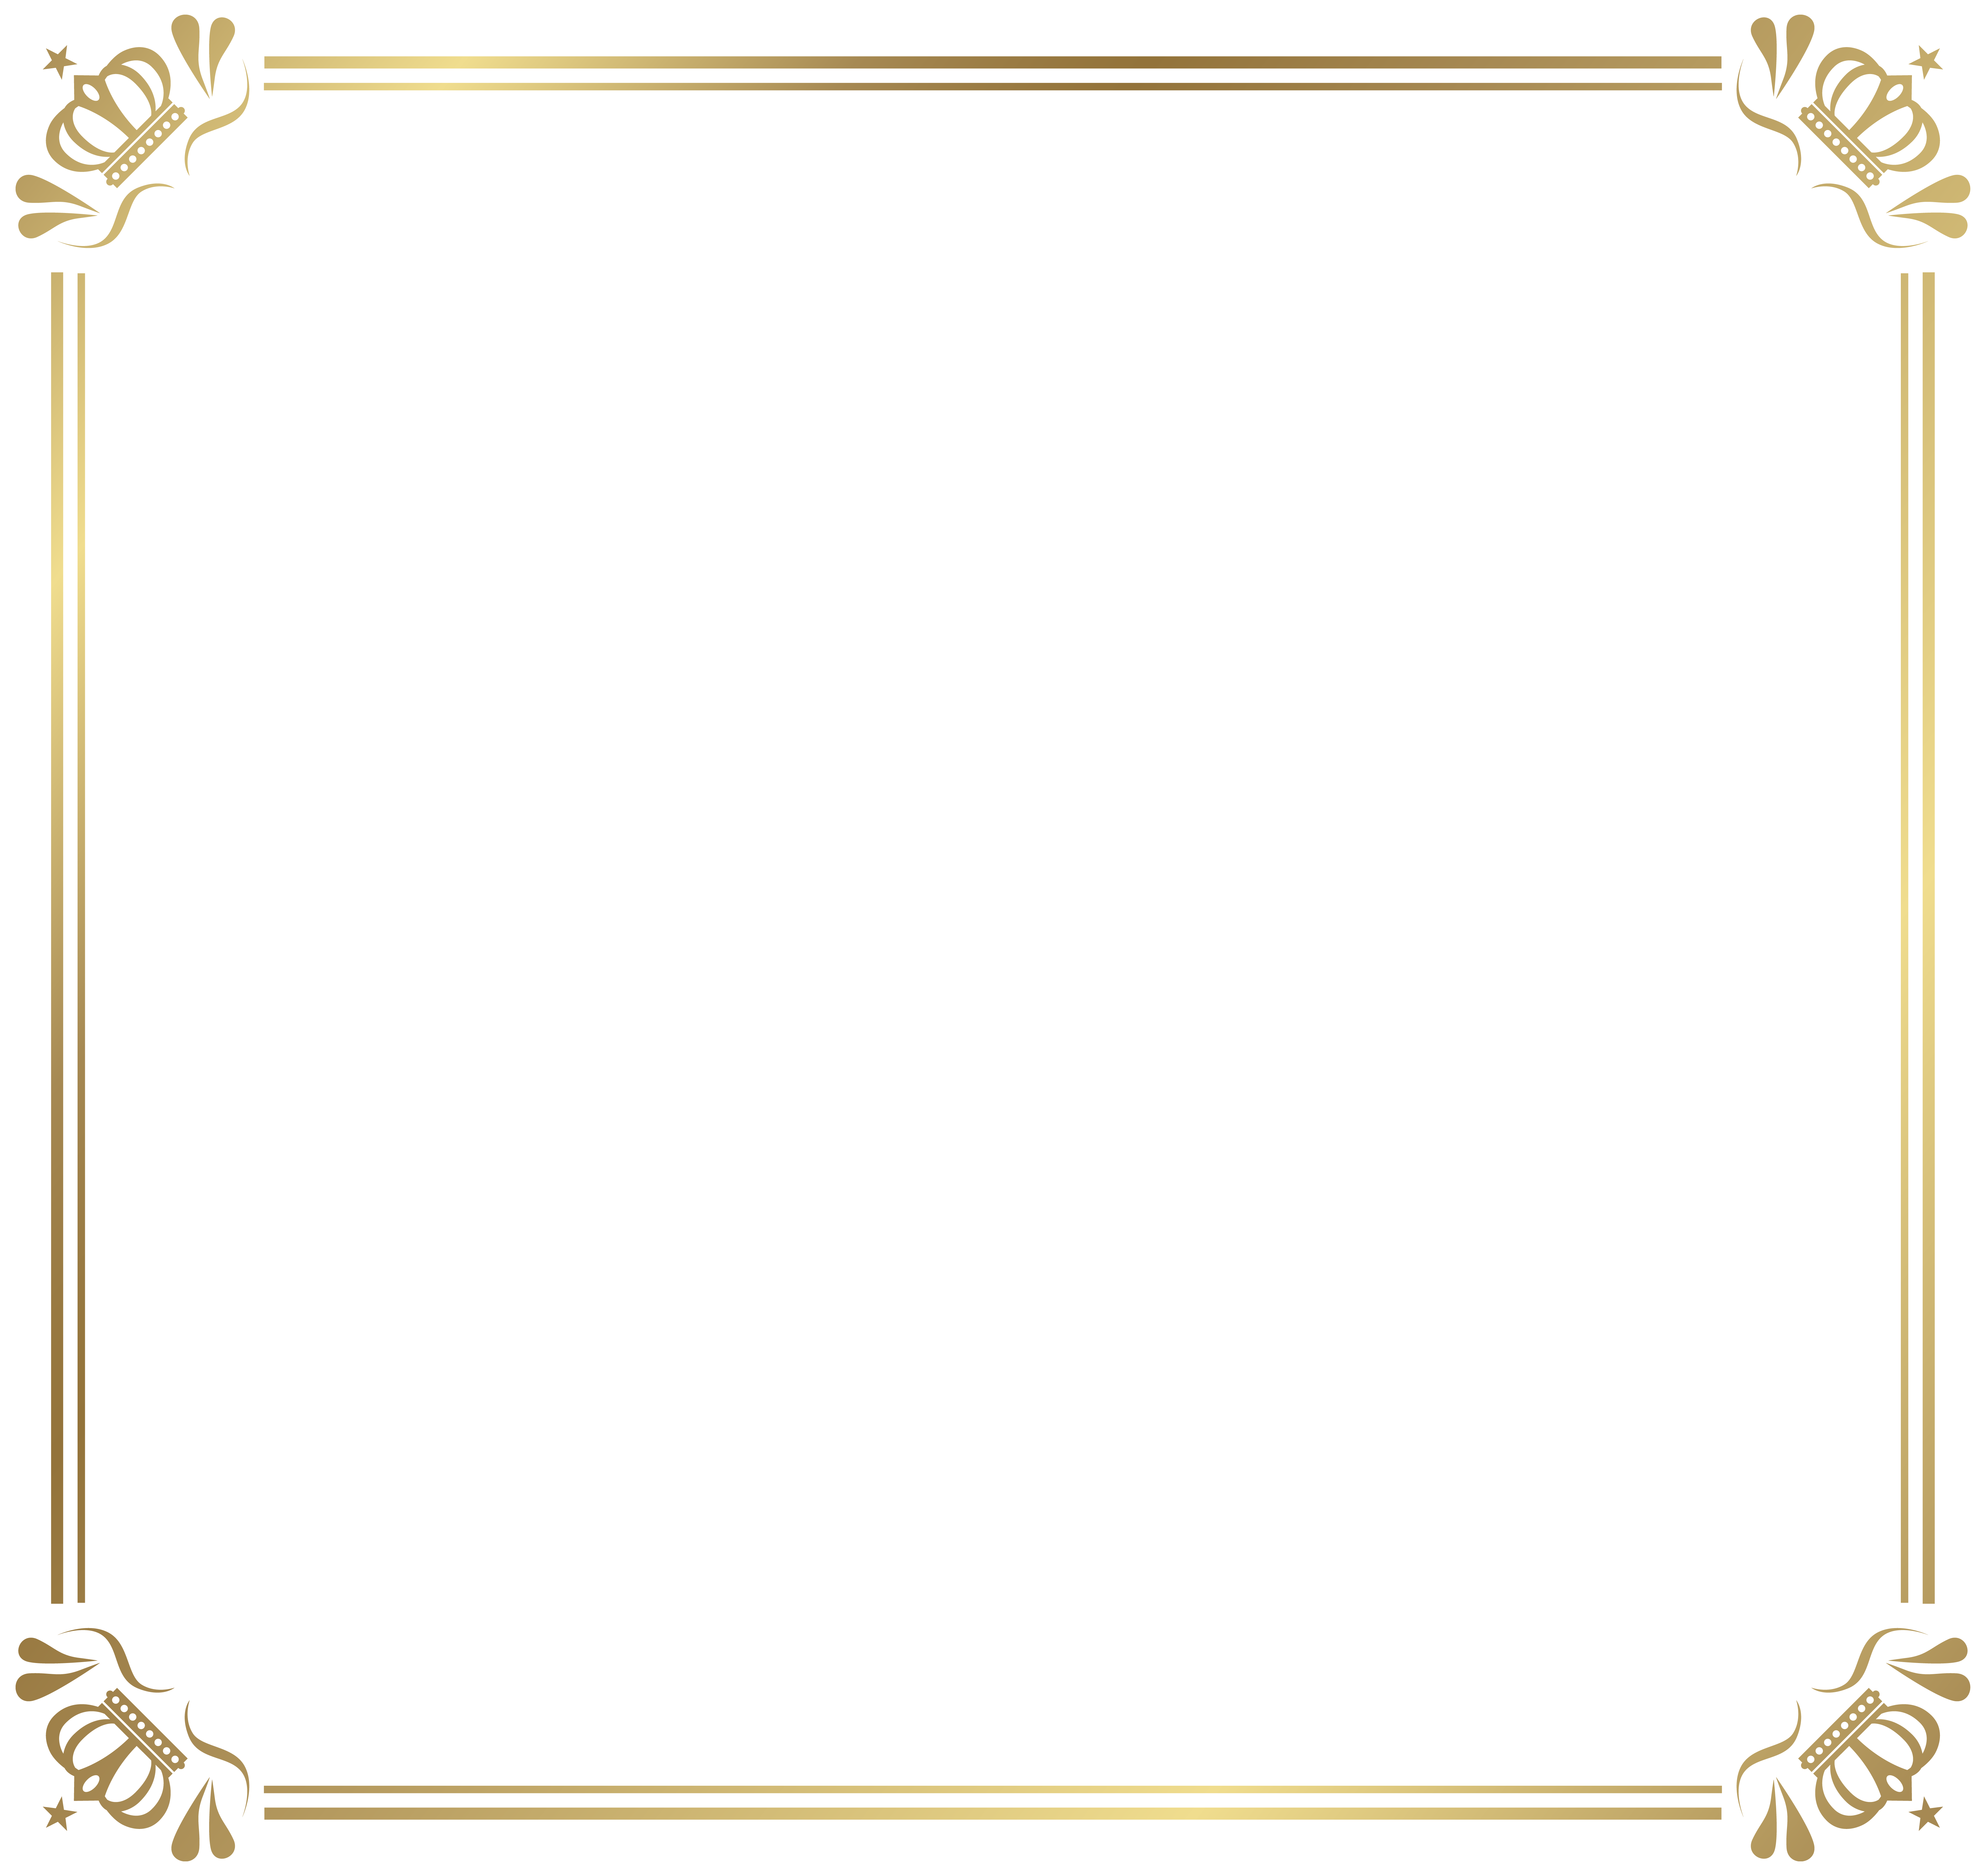 Frame Border With Crowns Png Image Gallery Yopriceville High Quality Images And Transparent Png Free Clipart Crown Png Png Images Clip Art